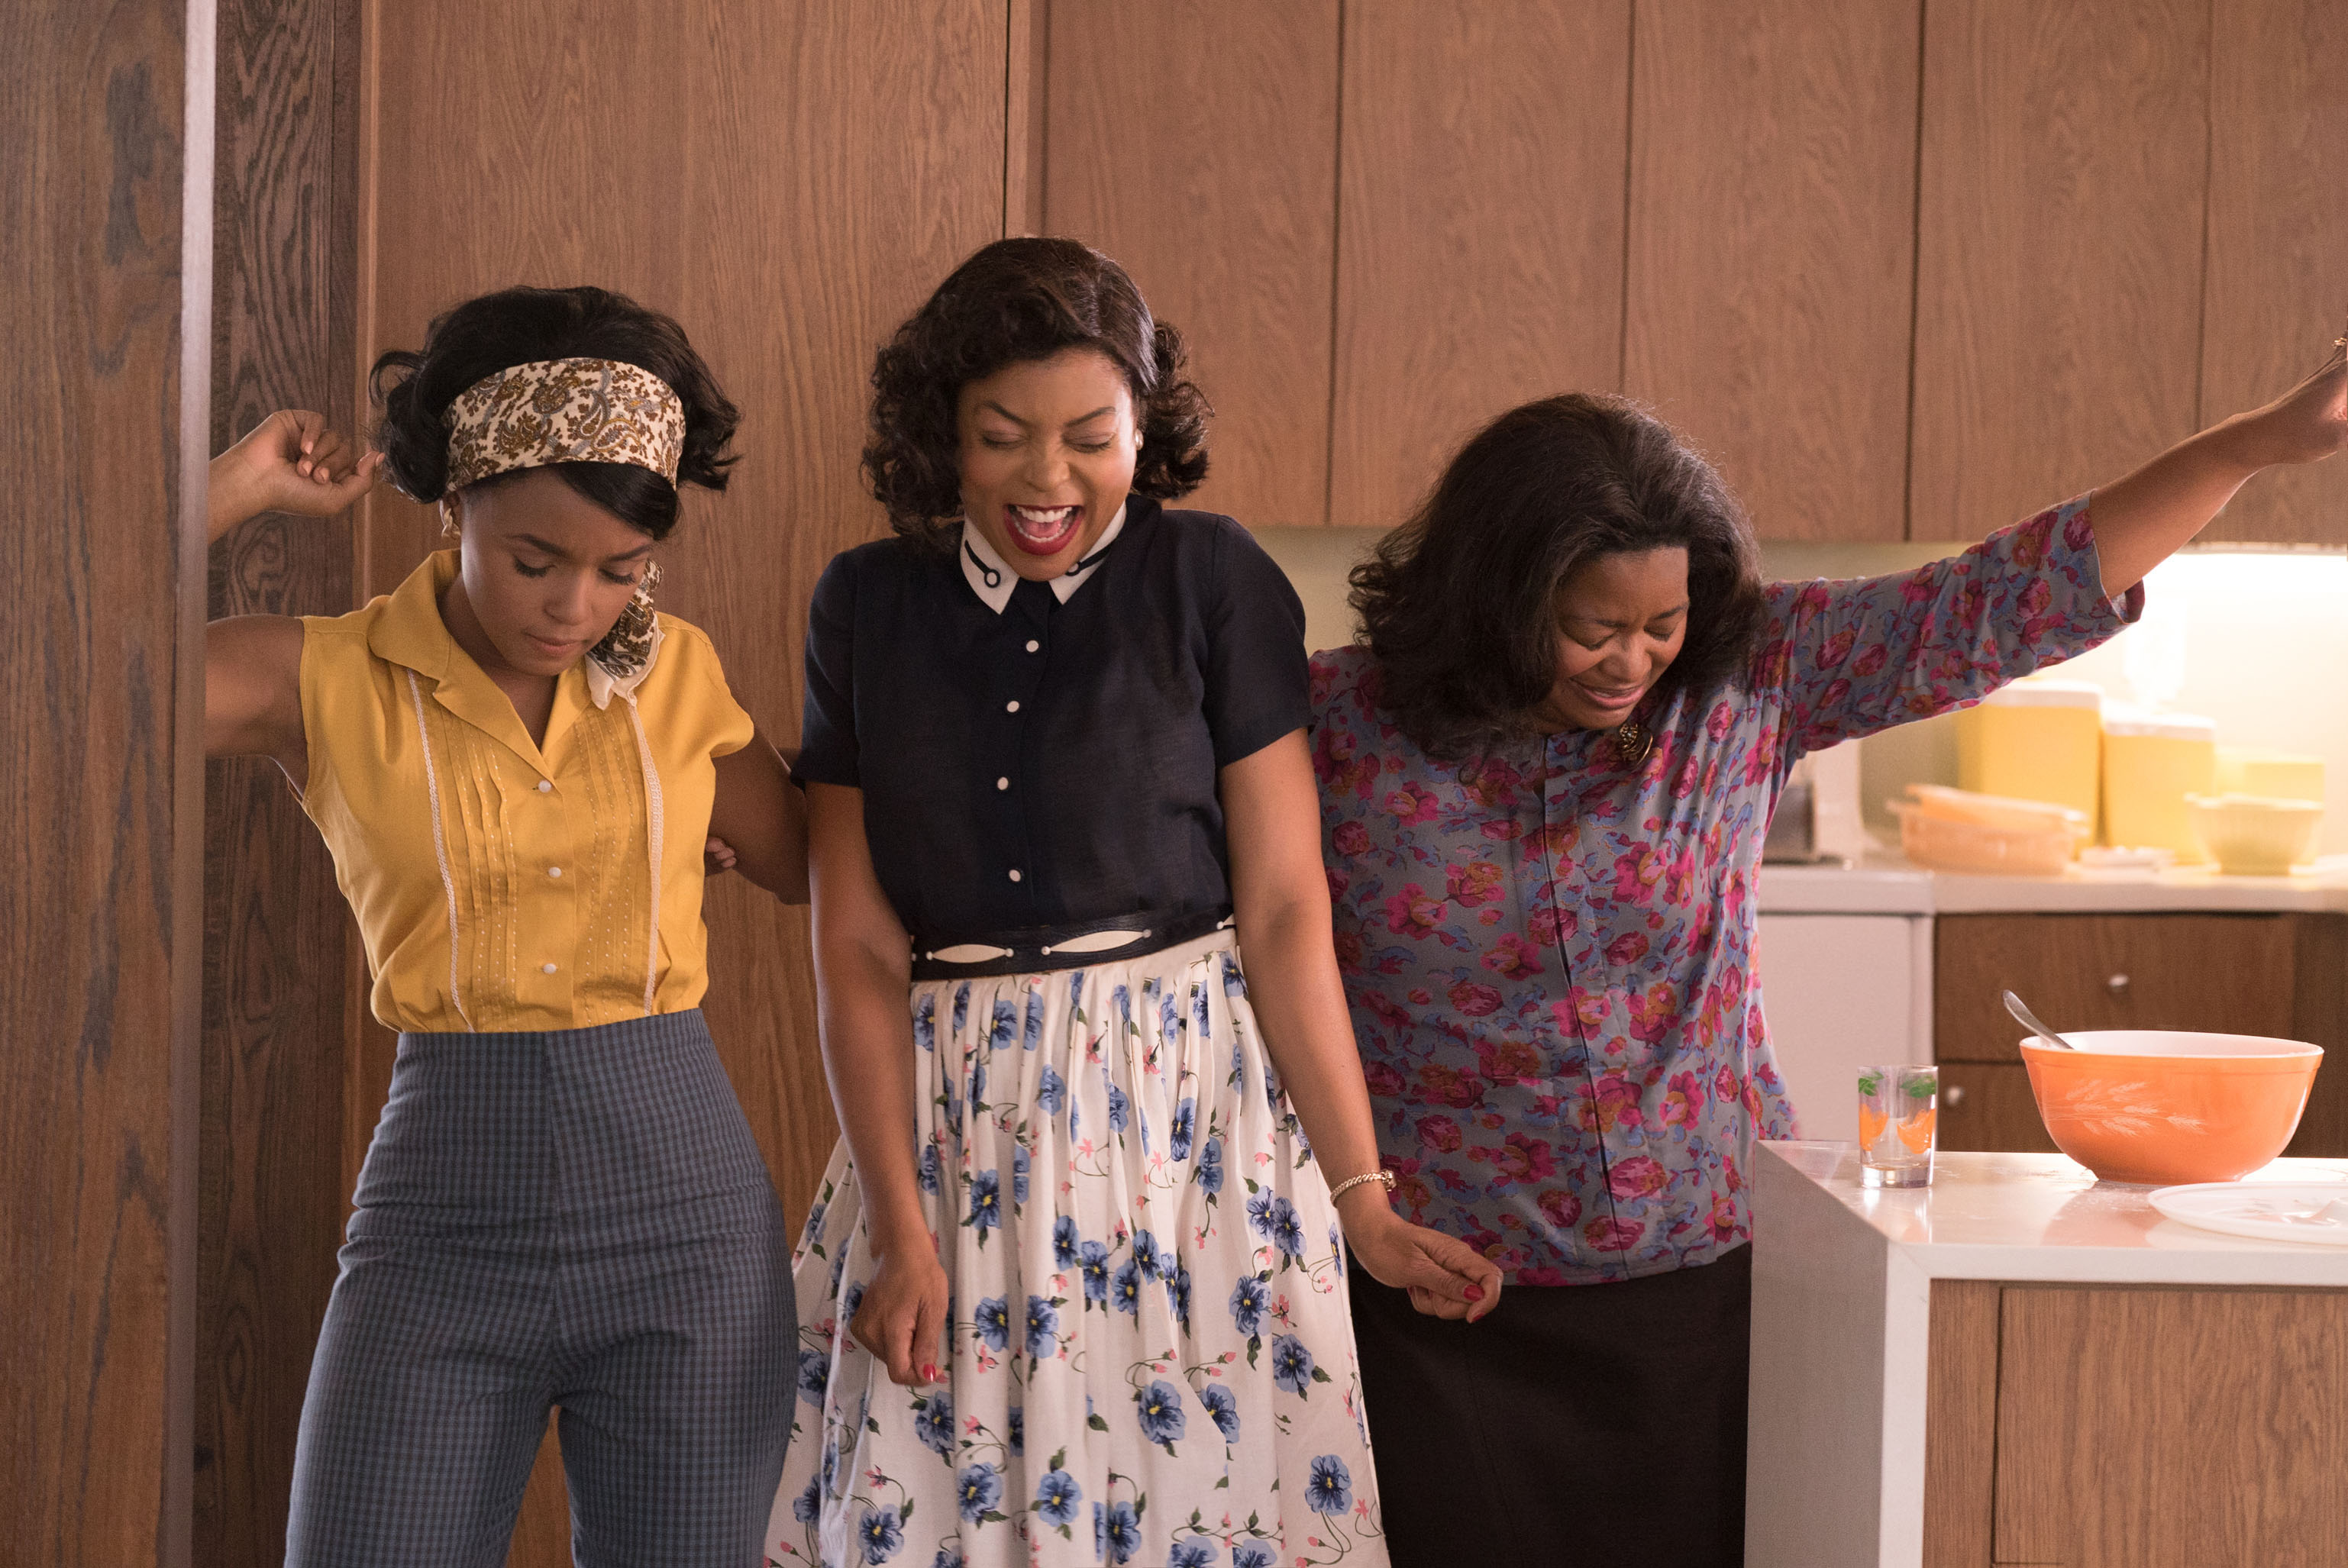 'Hidden Figures' Movie Probes Little-Known Heros of 1960s NASA